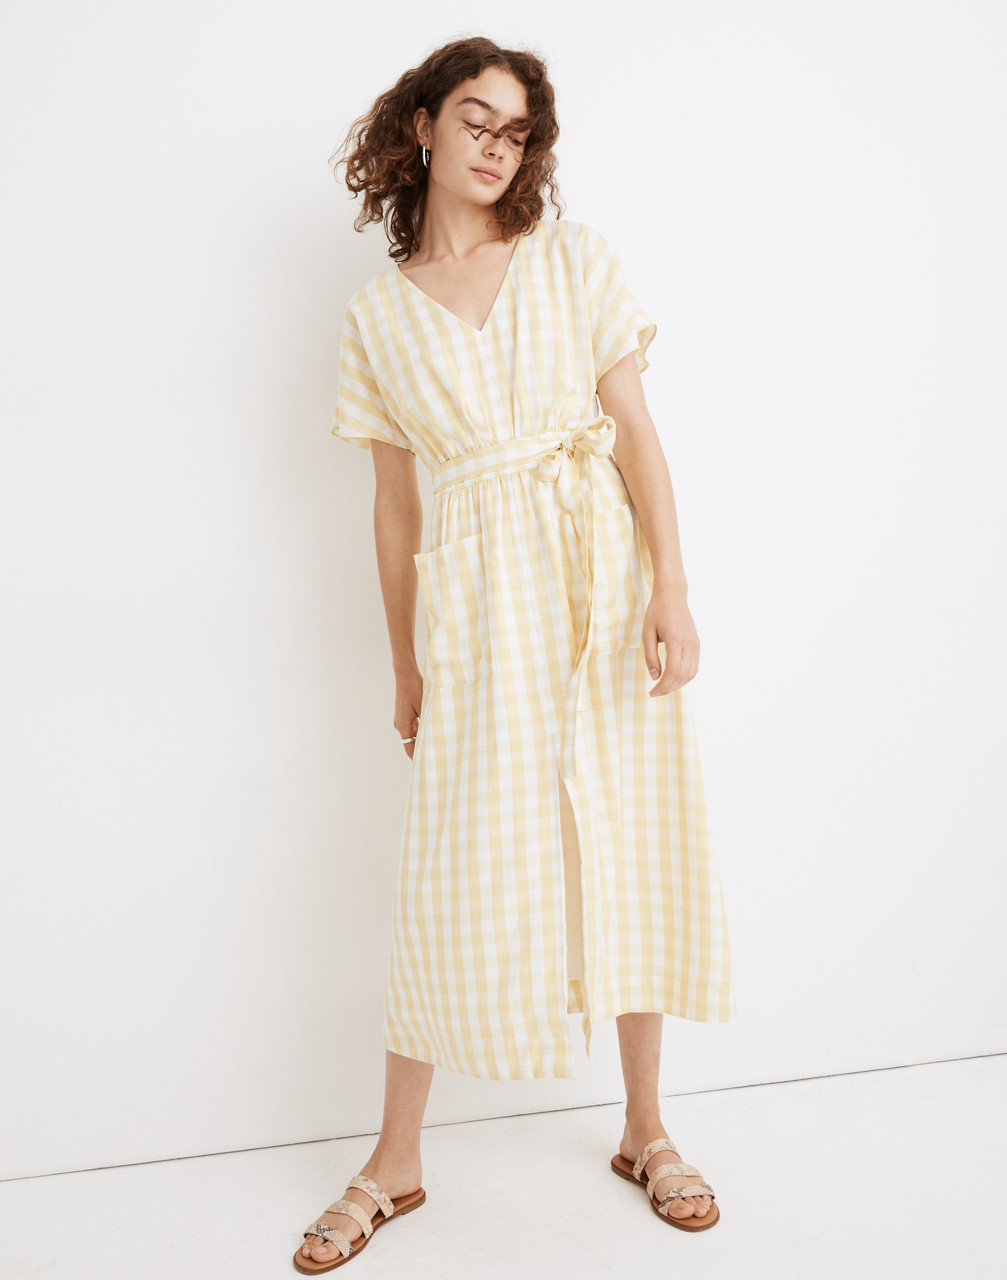 Cottagecore Dresses Aesthetic, Granny, Vintage Dolman-Sleeve Tie-Waist Midi Dress in Gingham Check $59.99 AT vintagedancer.com